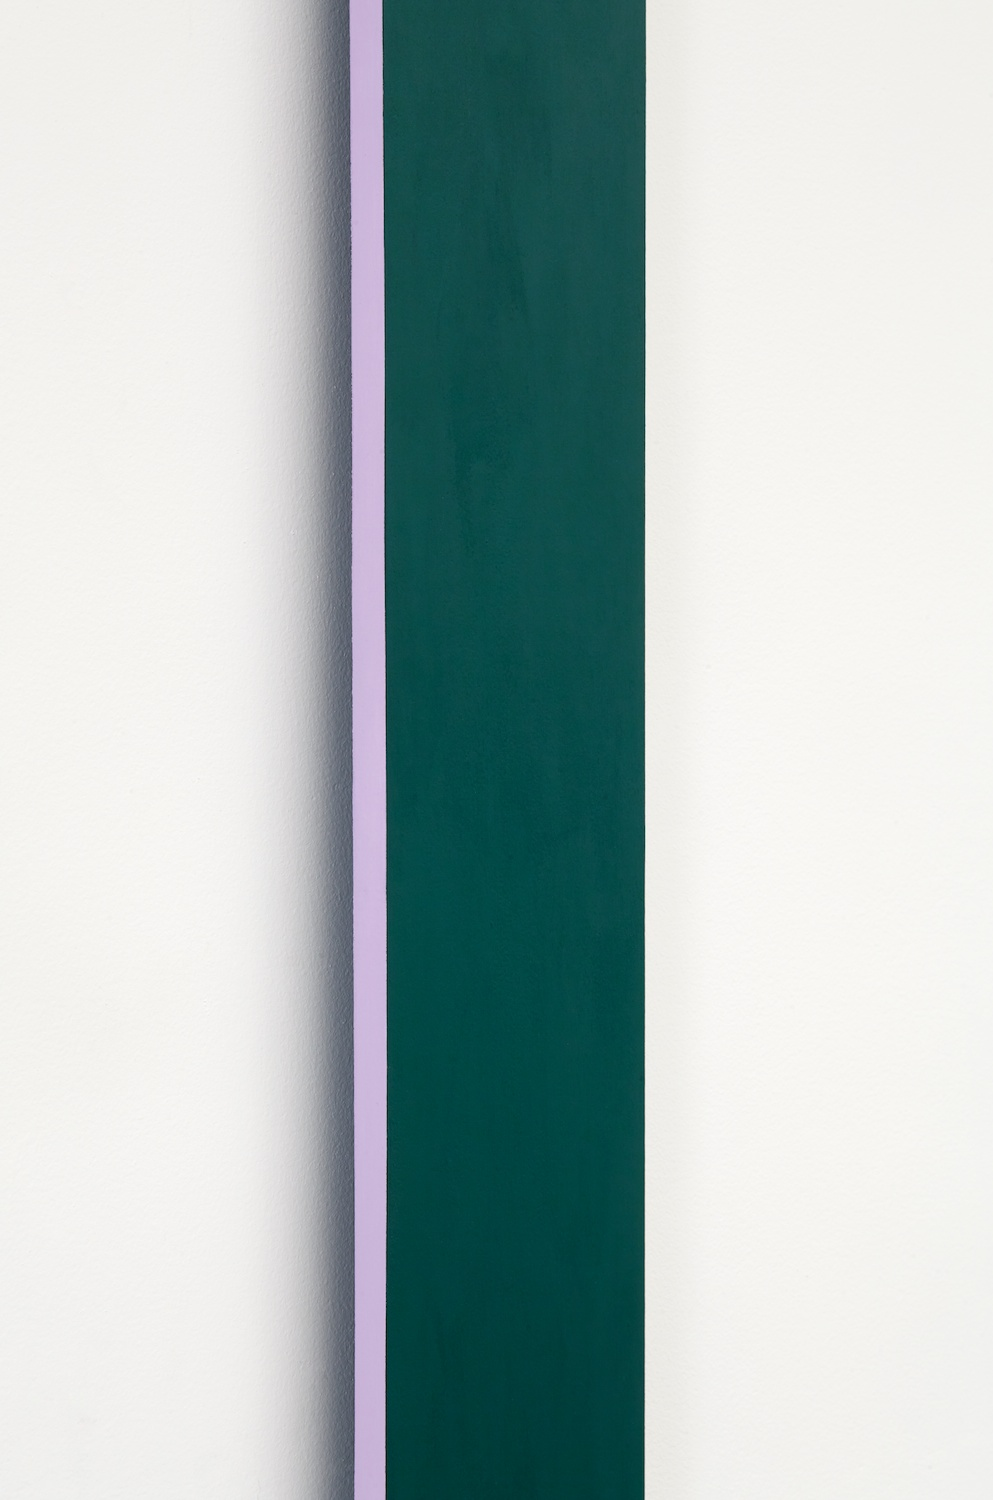 "Lisa Williamson Bookend 2014 Acrylic on aluminum 84"" x 30"" x 1"" LW145"